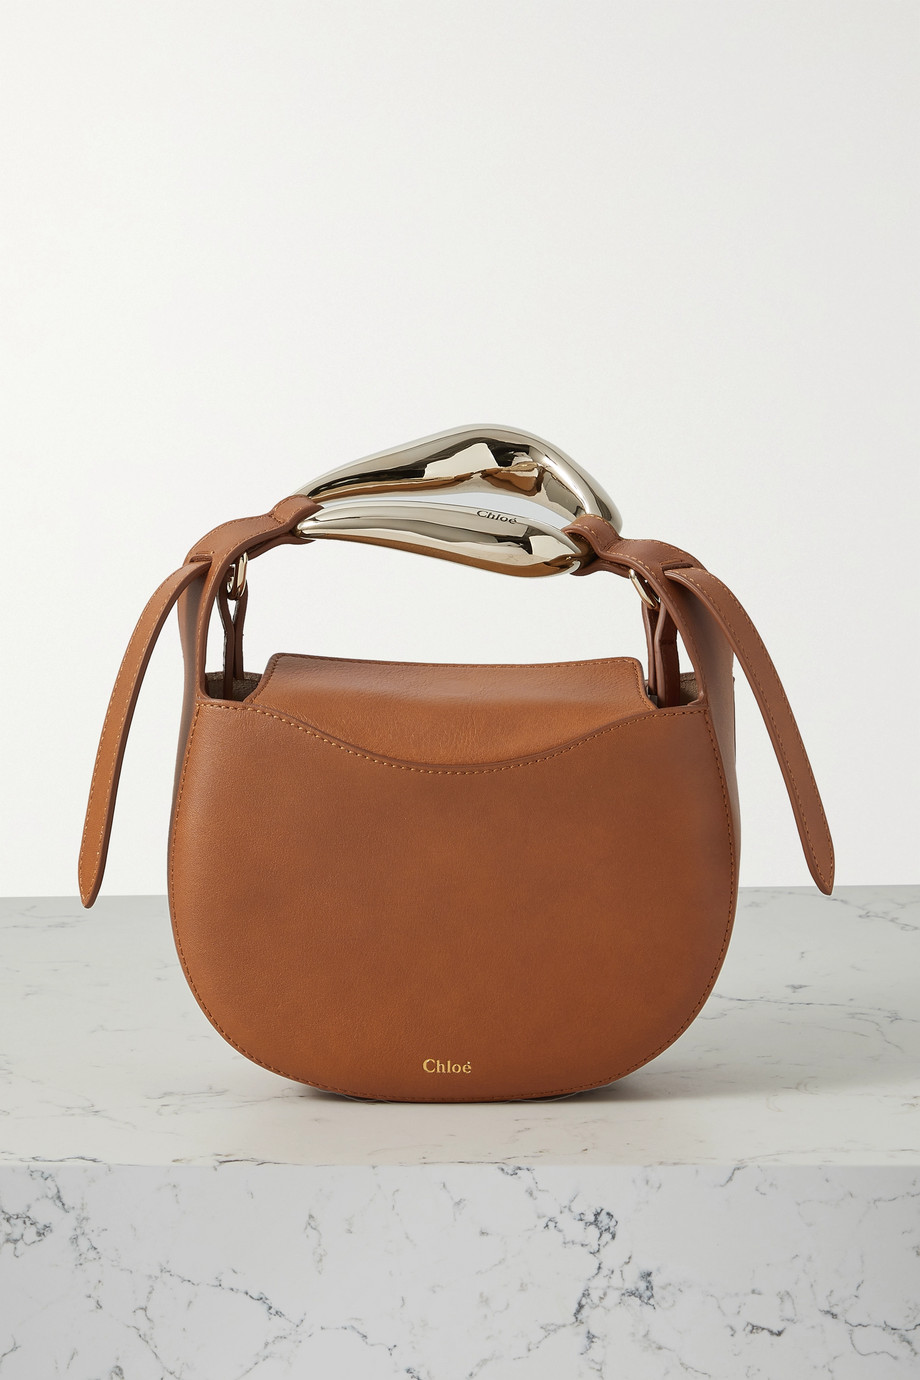 Chloé Sac en cuir Kiss Small